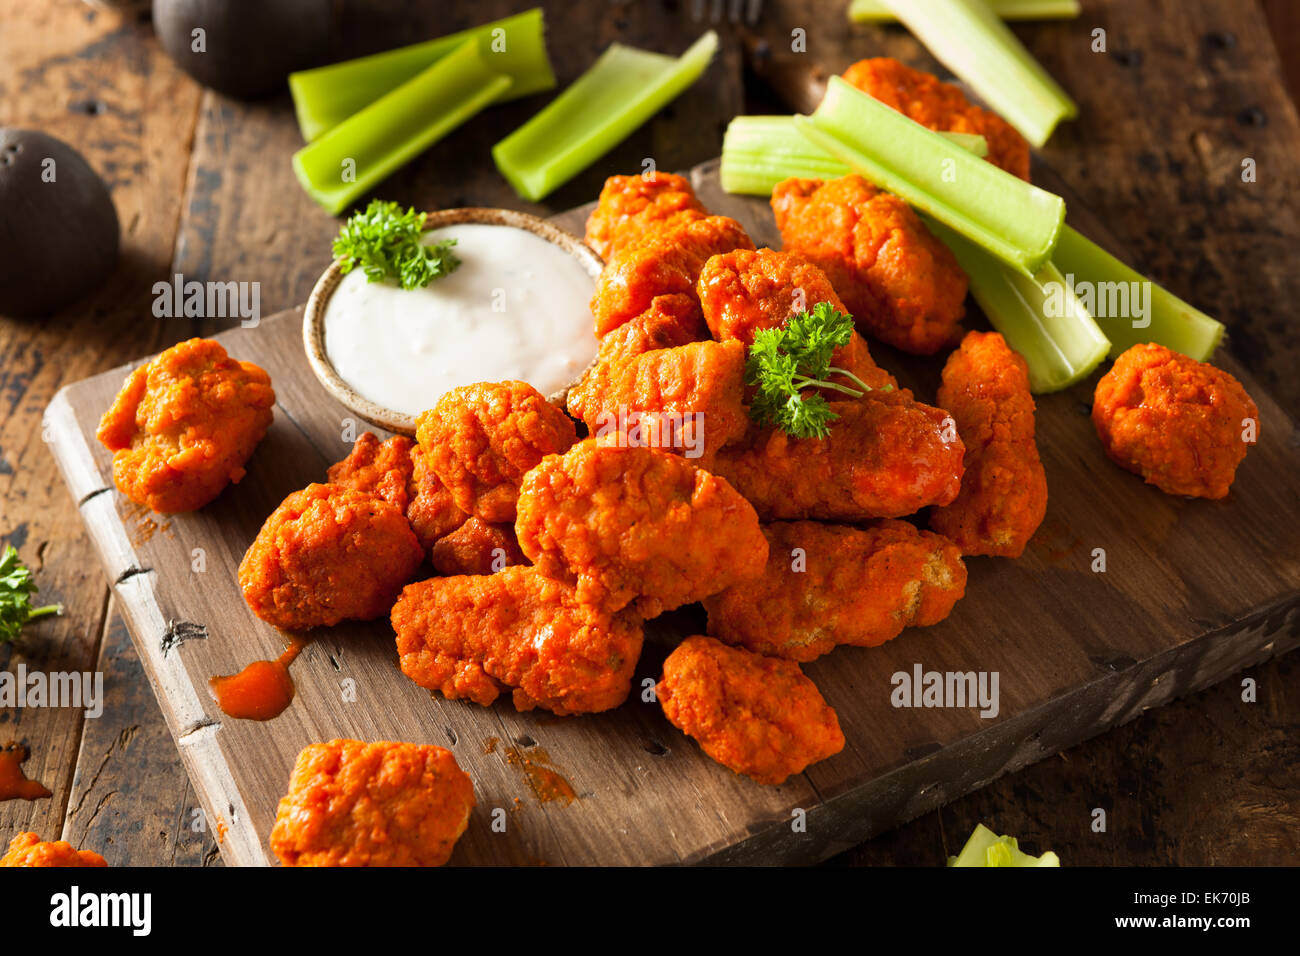 Hot and Spicy Boneless Buffalo Chicken Wings with Ranch - Stock Image